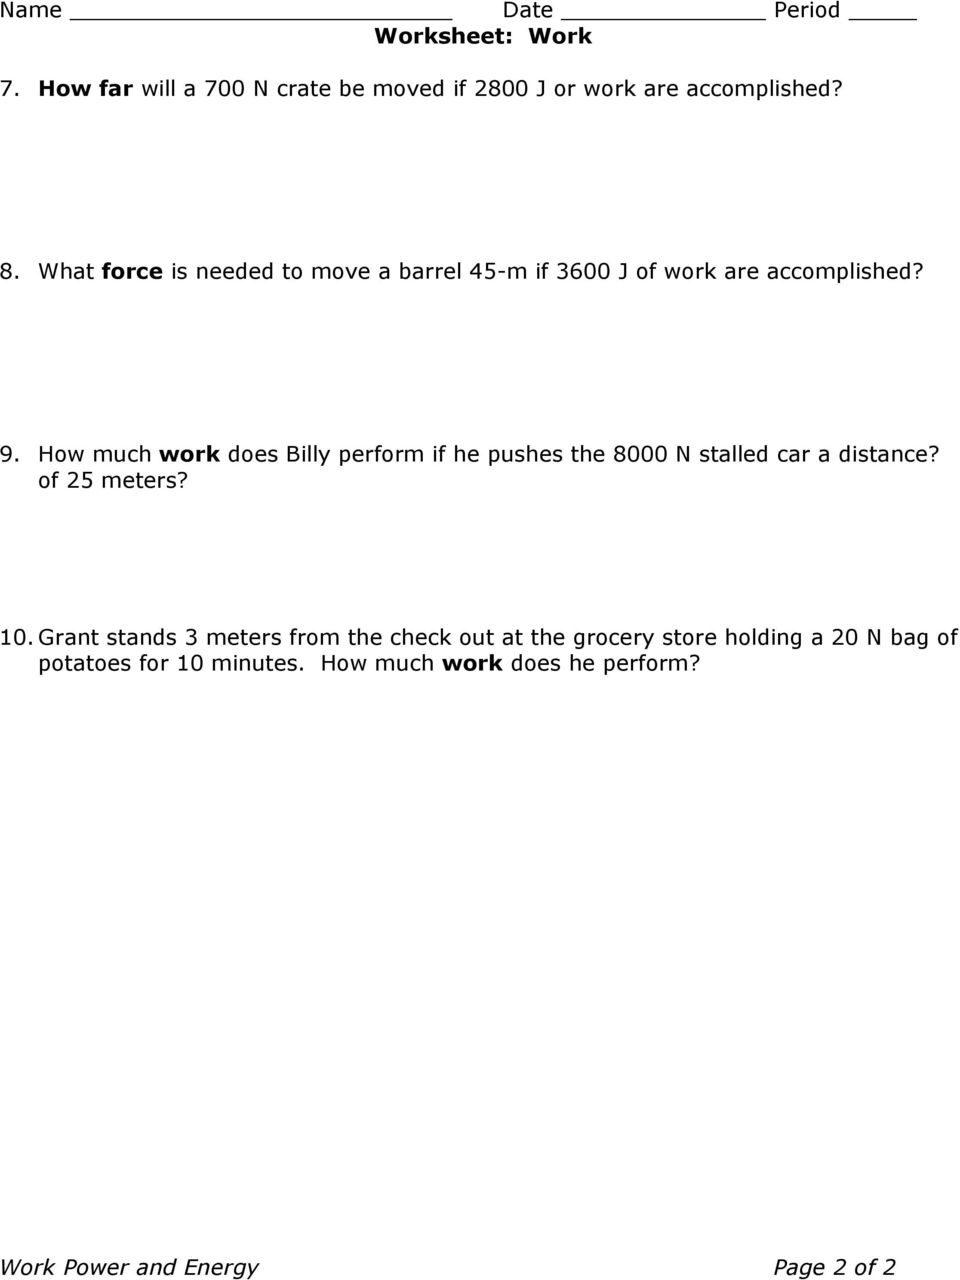 Name Period WORKSHEET: KINETIC AND POTENTIAL ENERGY PROBLEMS. 1 ...